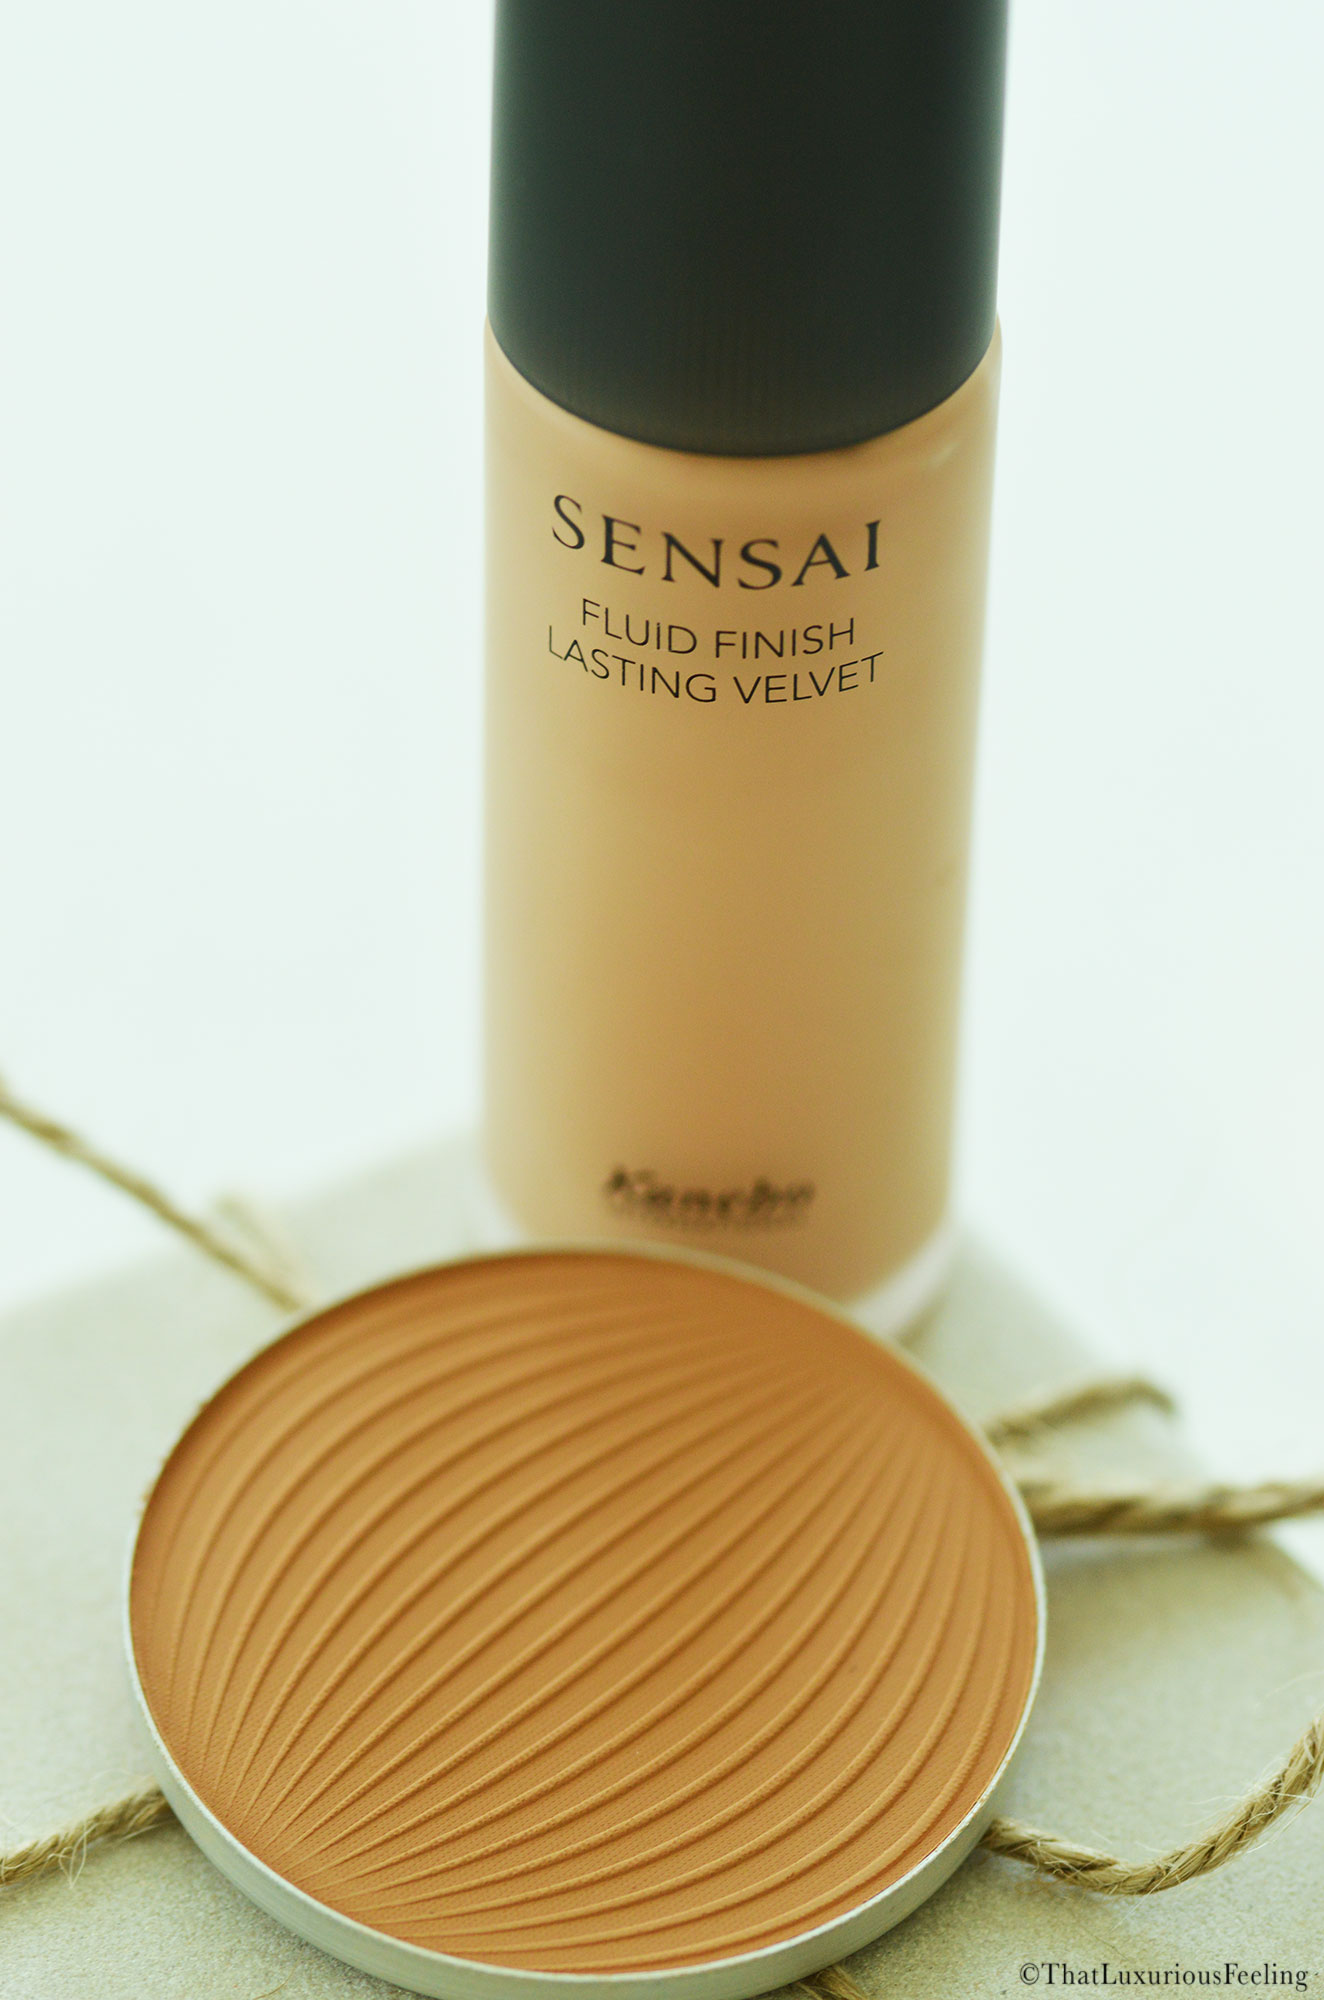 As you know, I have a warm relationship with Sensai since it's one of these brands that has been in my collection from the start. In Scandinavia, it is very ...